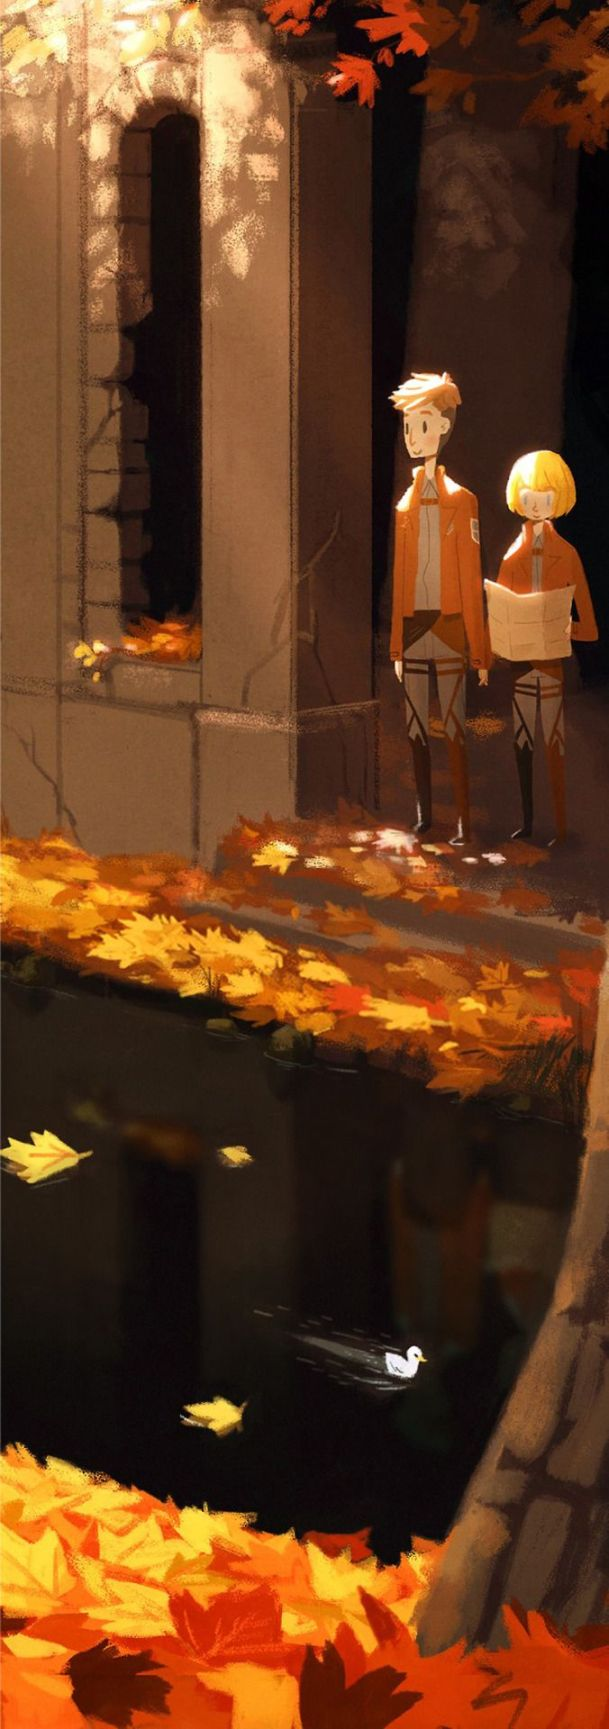 http://theartofanimation.tumblr.com/post/105052942593/olivia-huynh